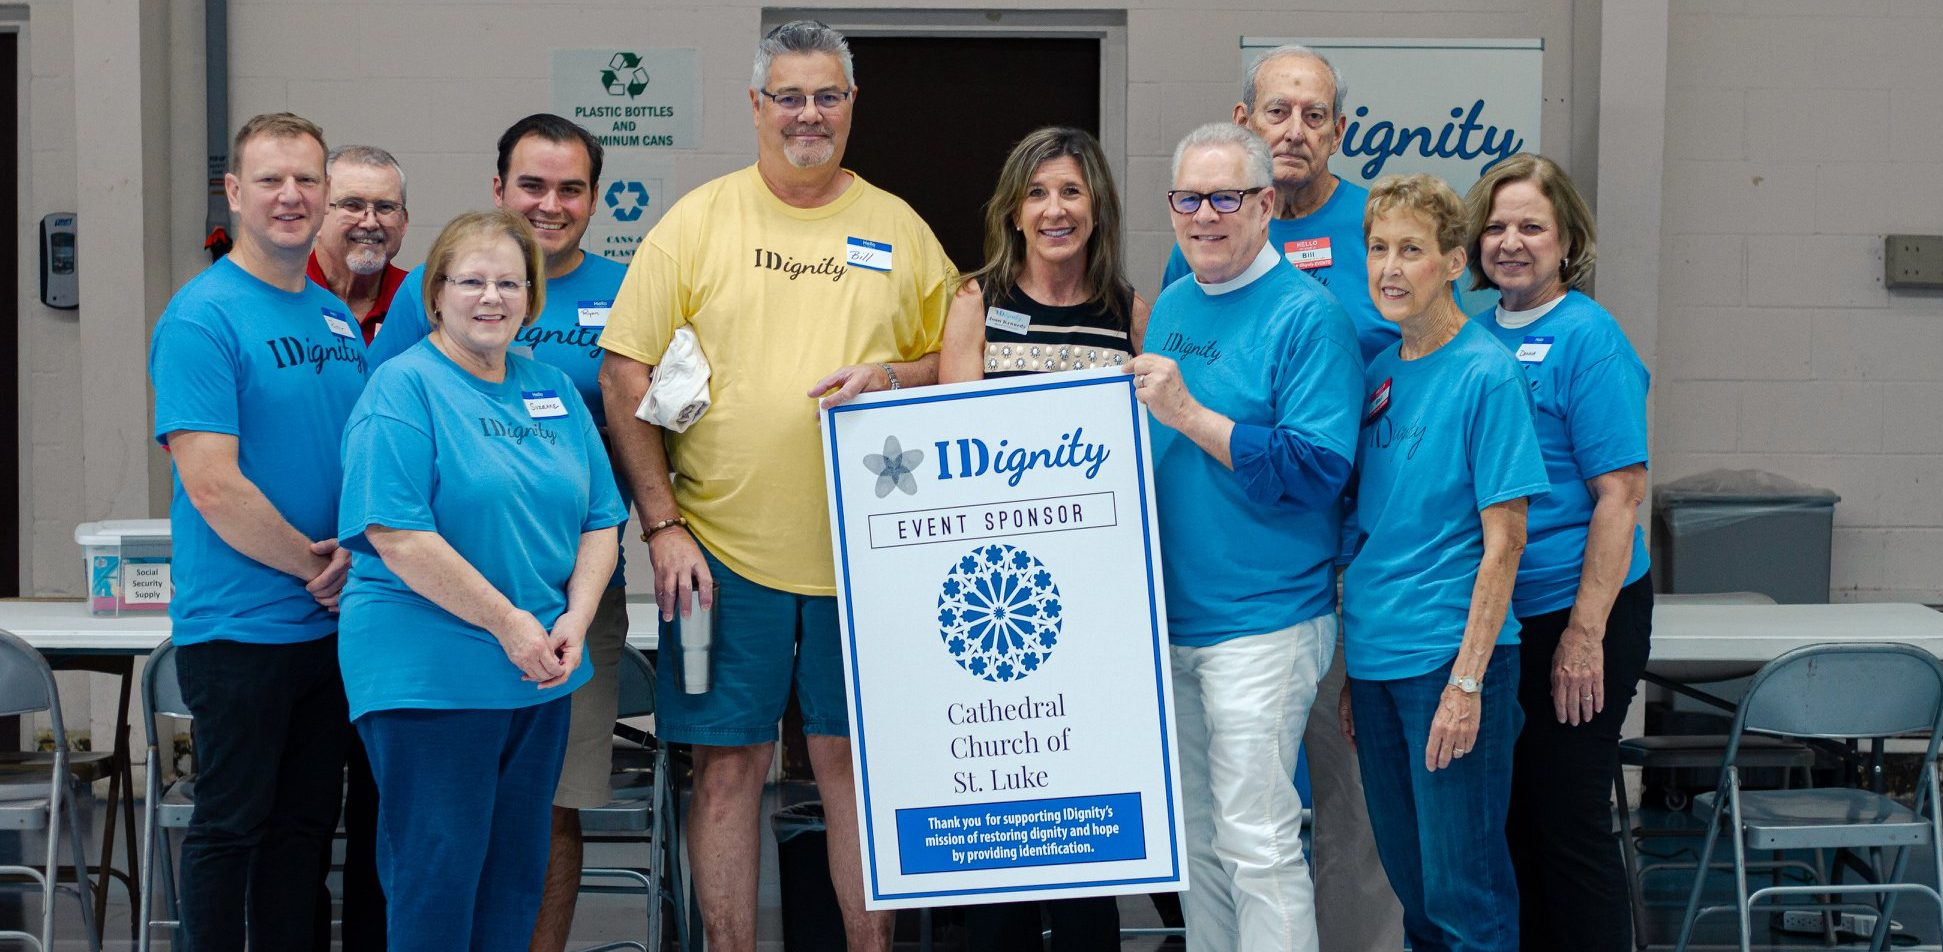 Cathedral Church of St Luke sponsors IDignity